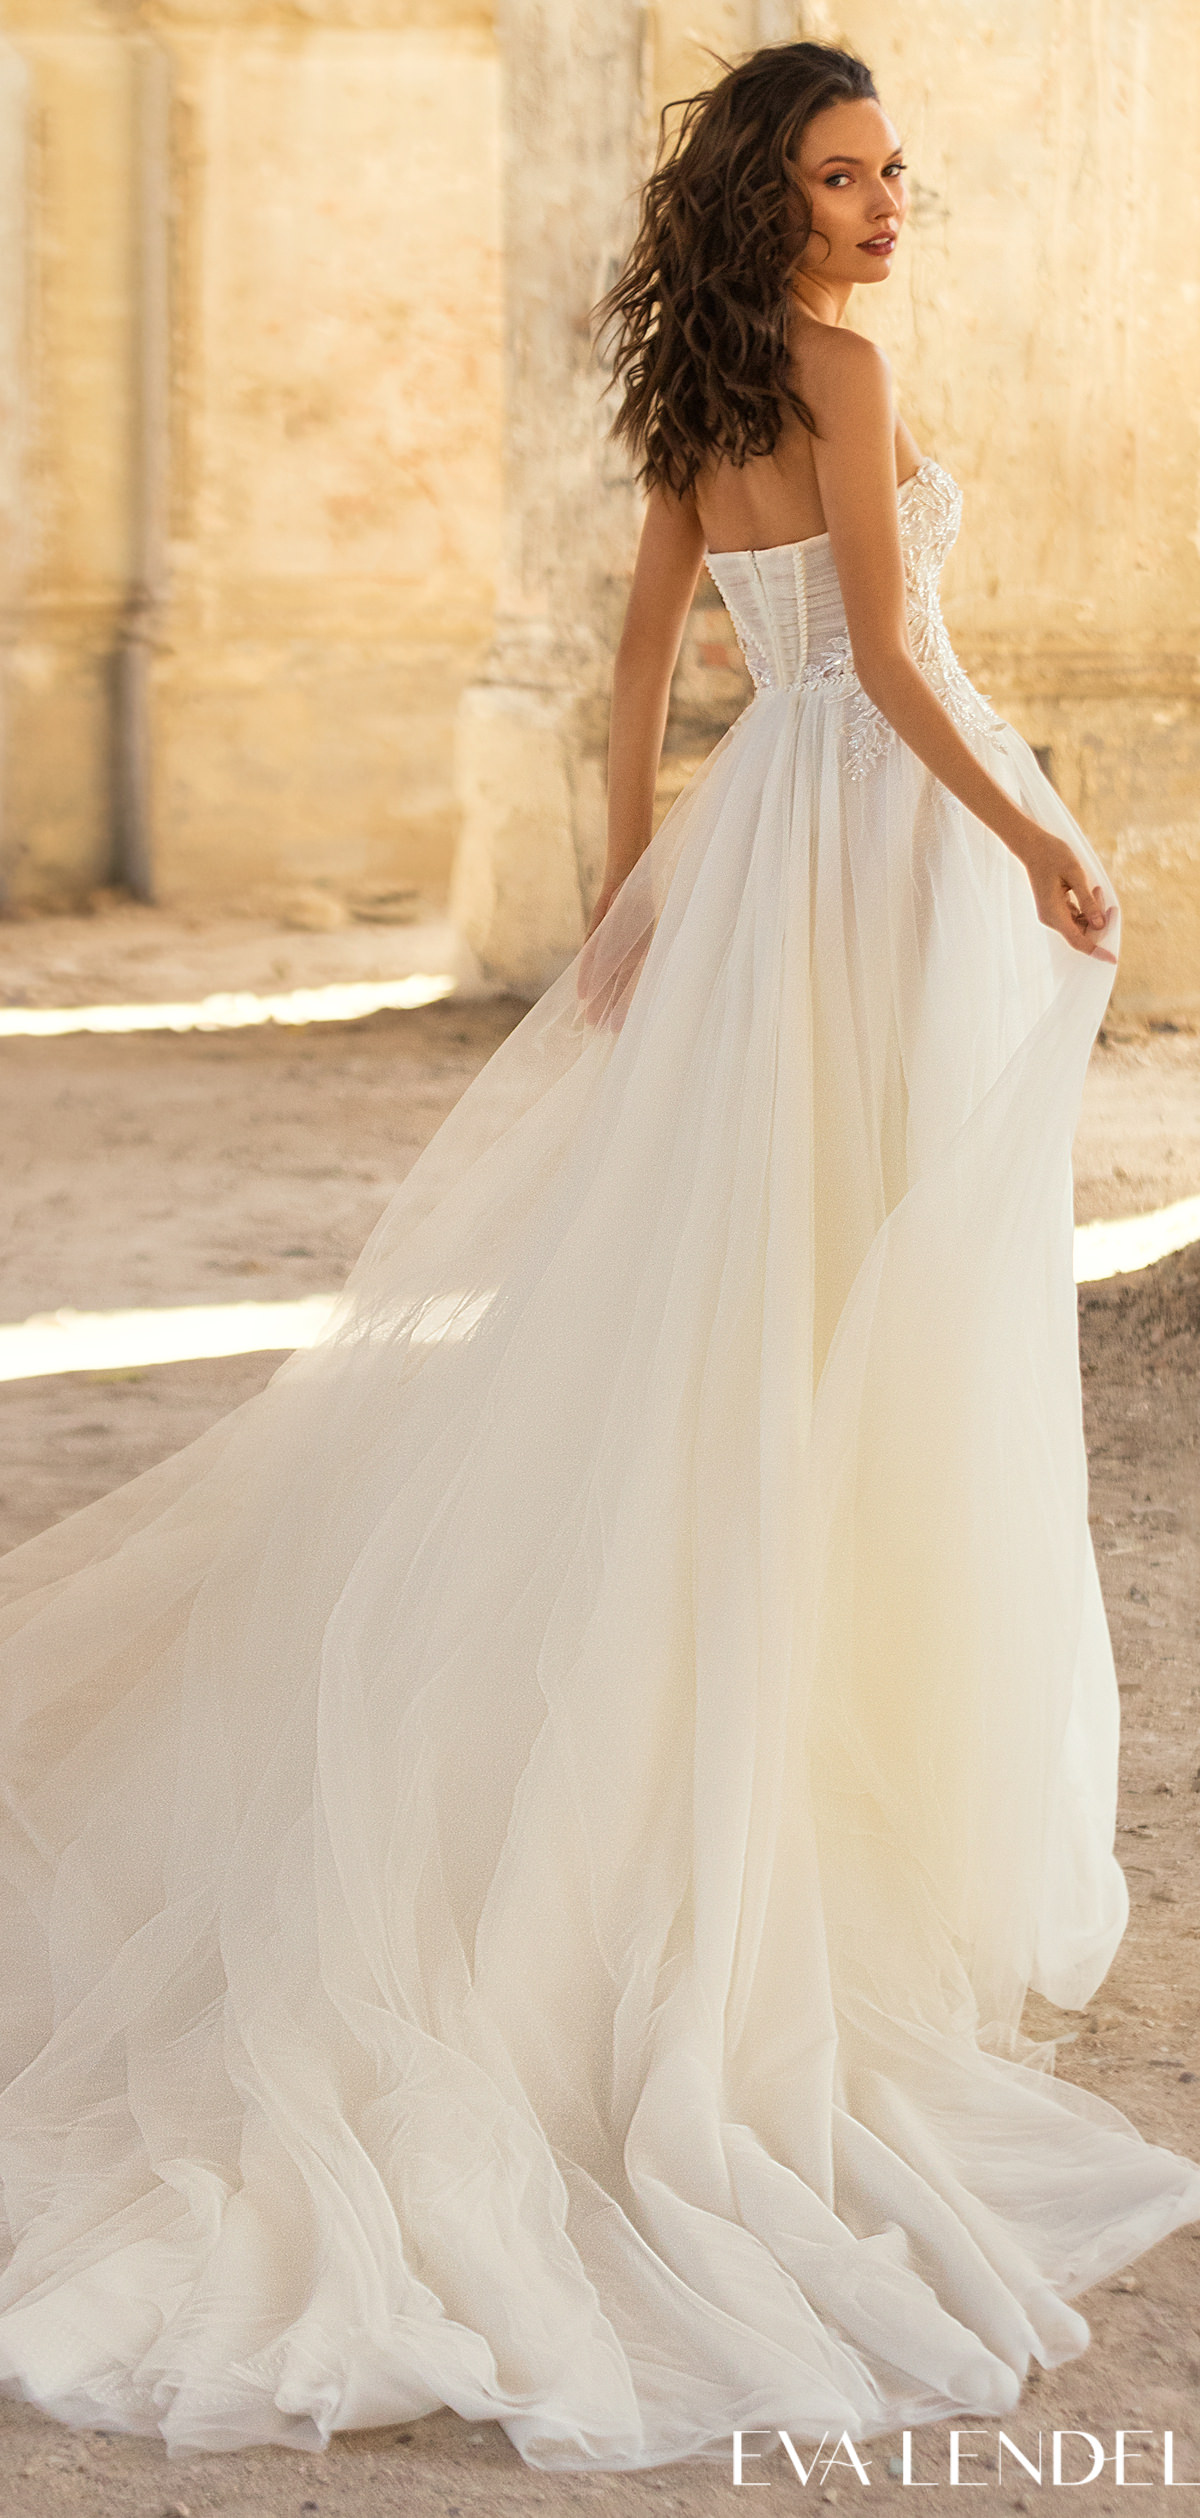 Eva Lendel Wedding Dresses 2021- Golden Hour Collection -Kollet